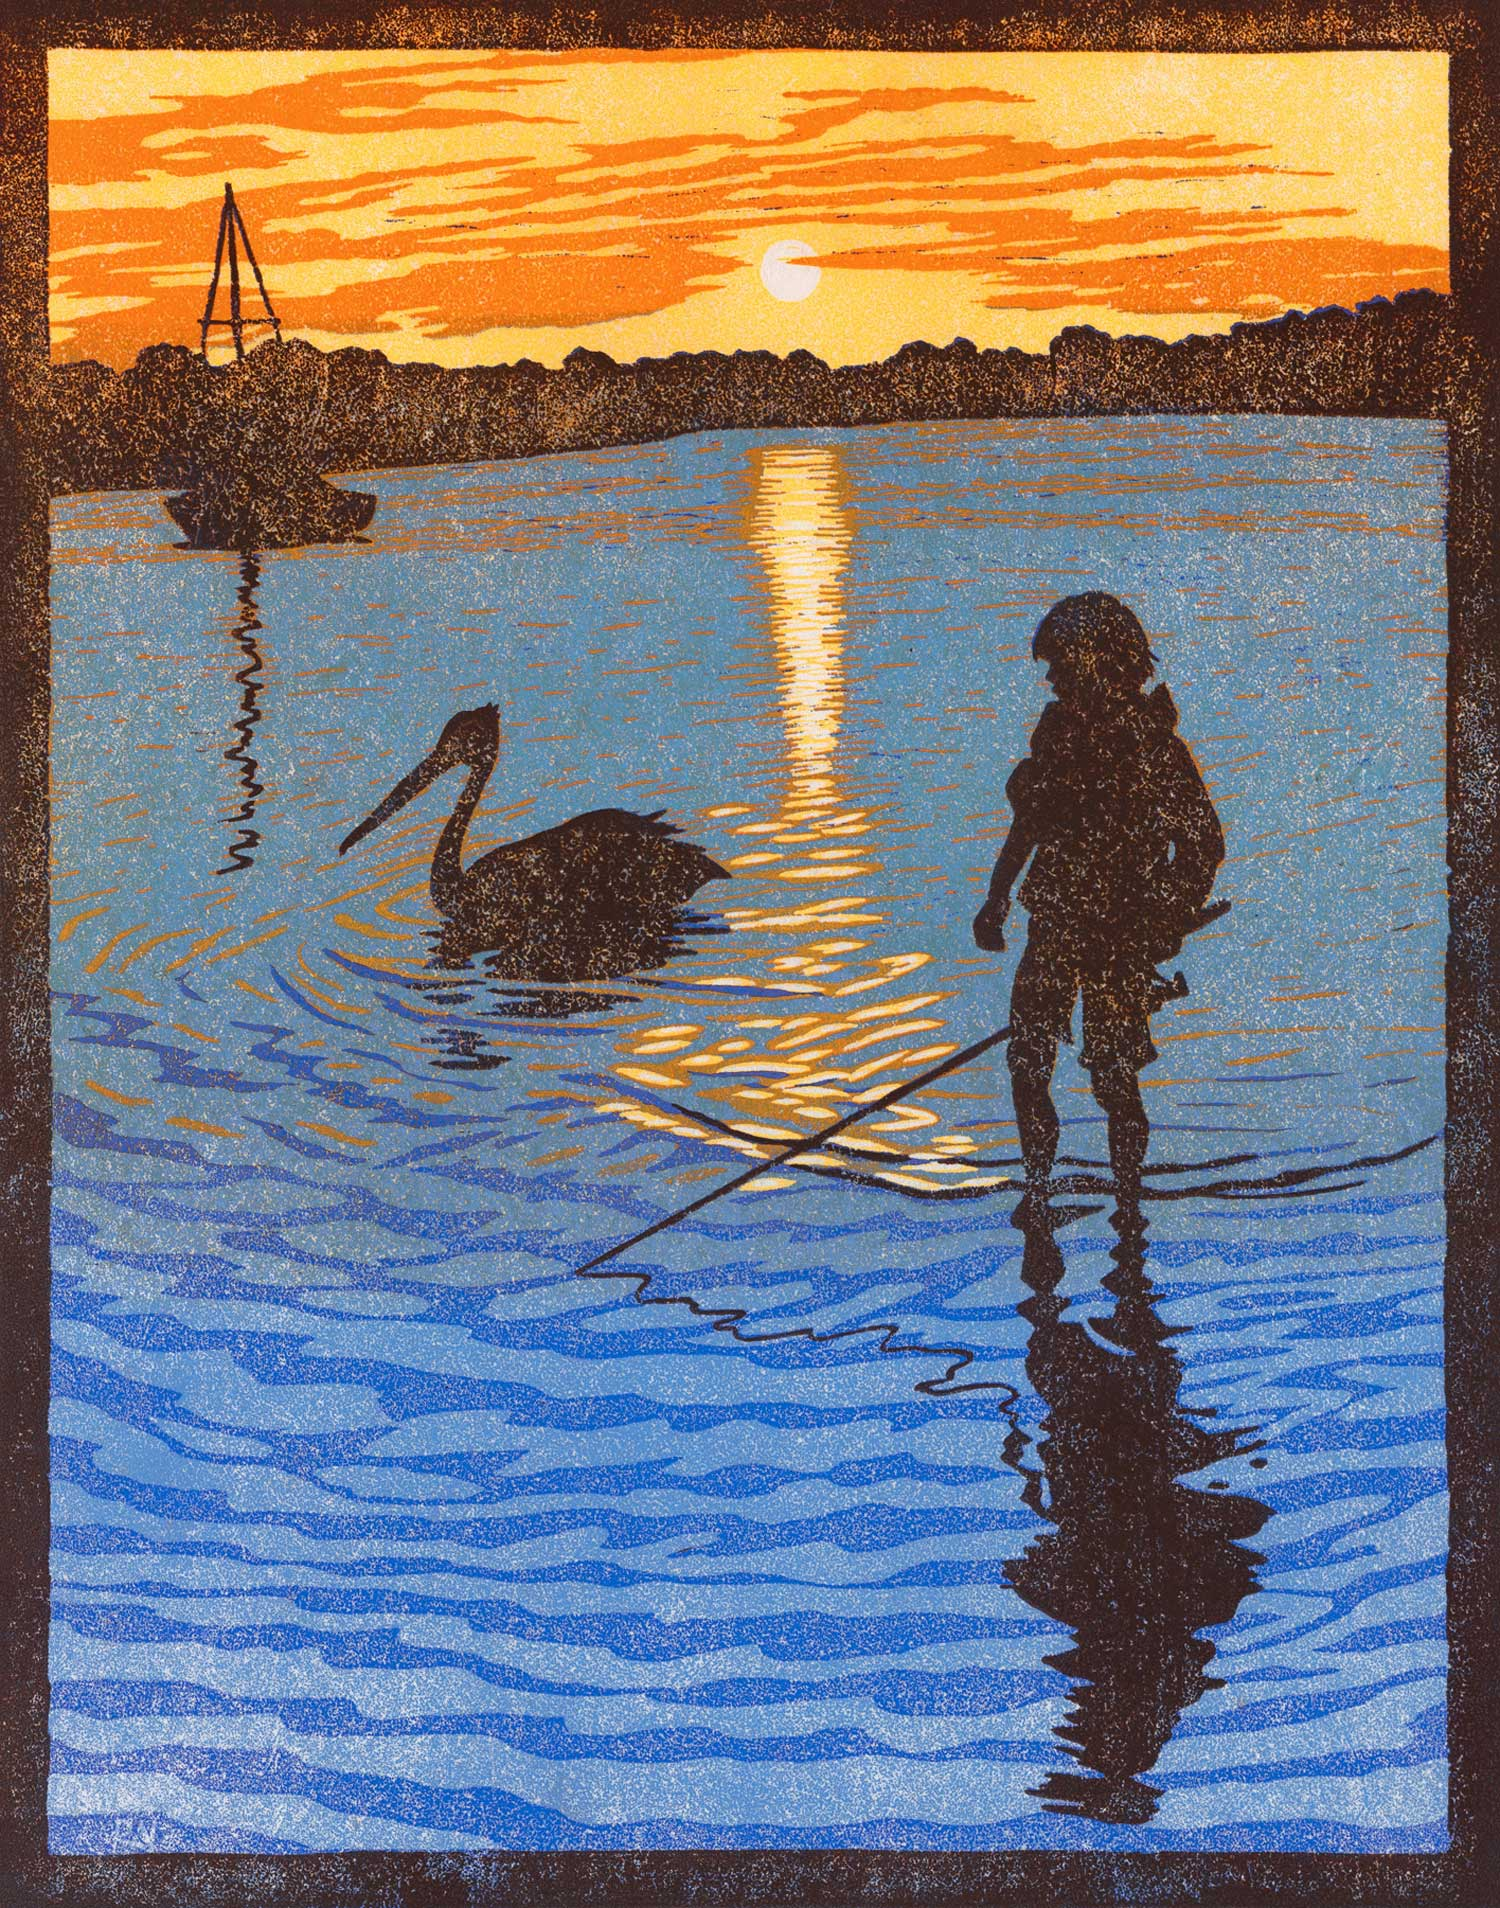 IN THE SHALLOWS  38.5 X 30 CM,  EDITION OF 50  pigment print of a reduction linocut on Japanese paper  $900